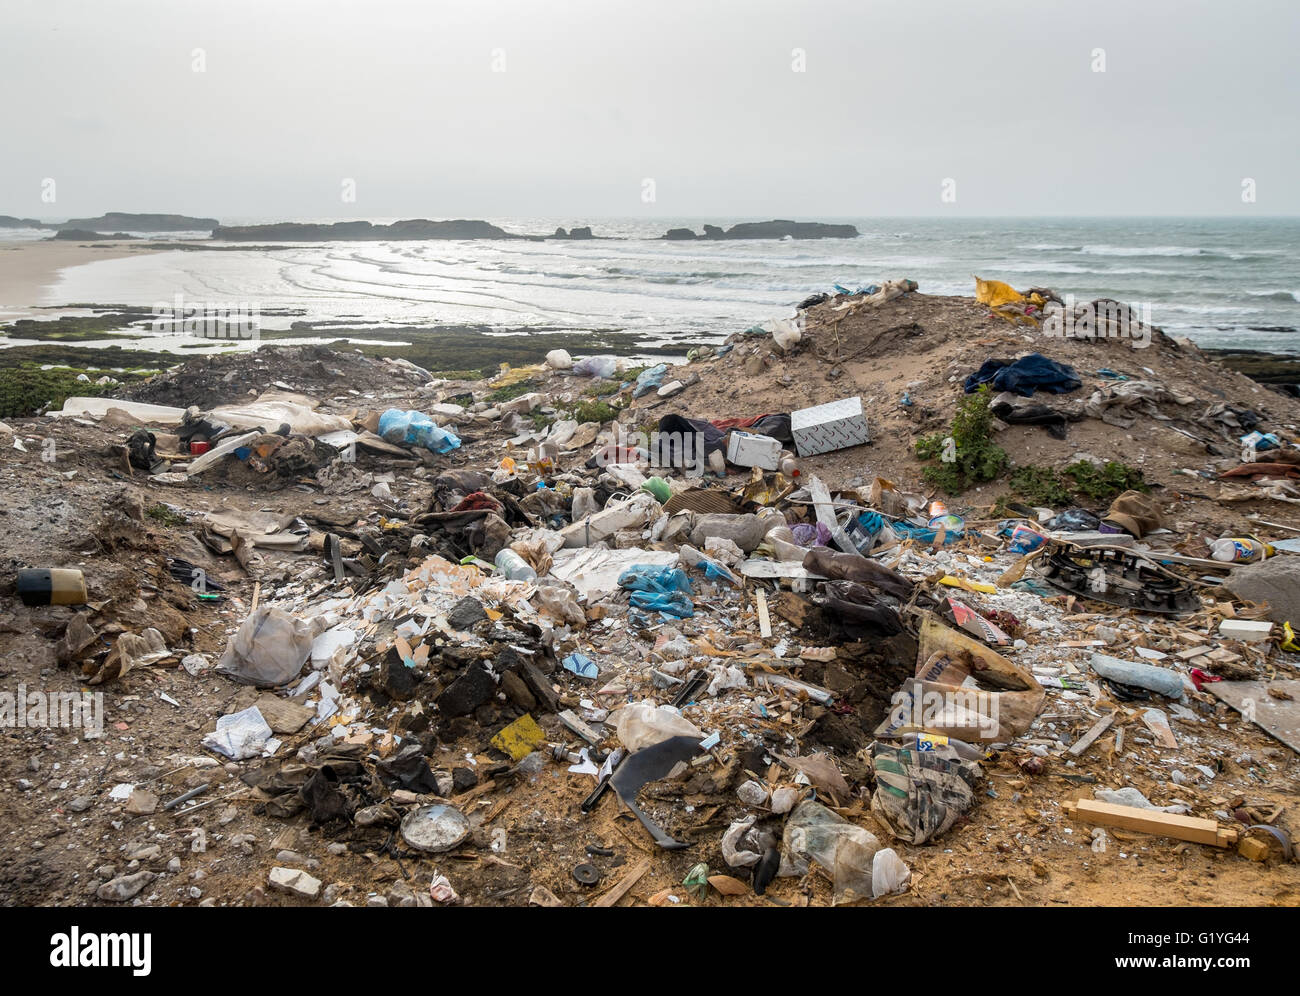 Rubbish on a beach in Morocco - Stock Image